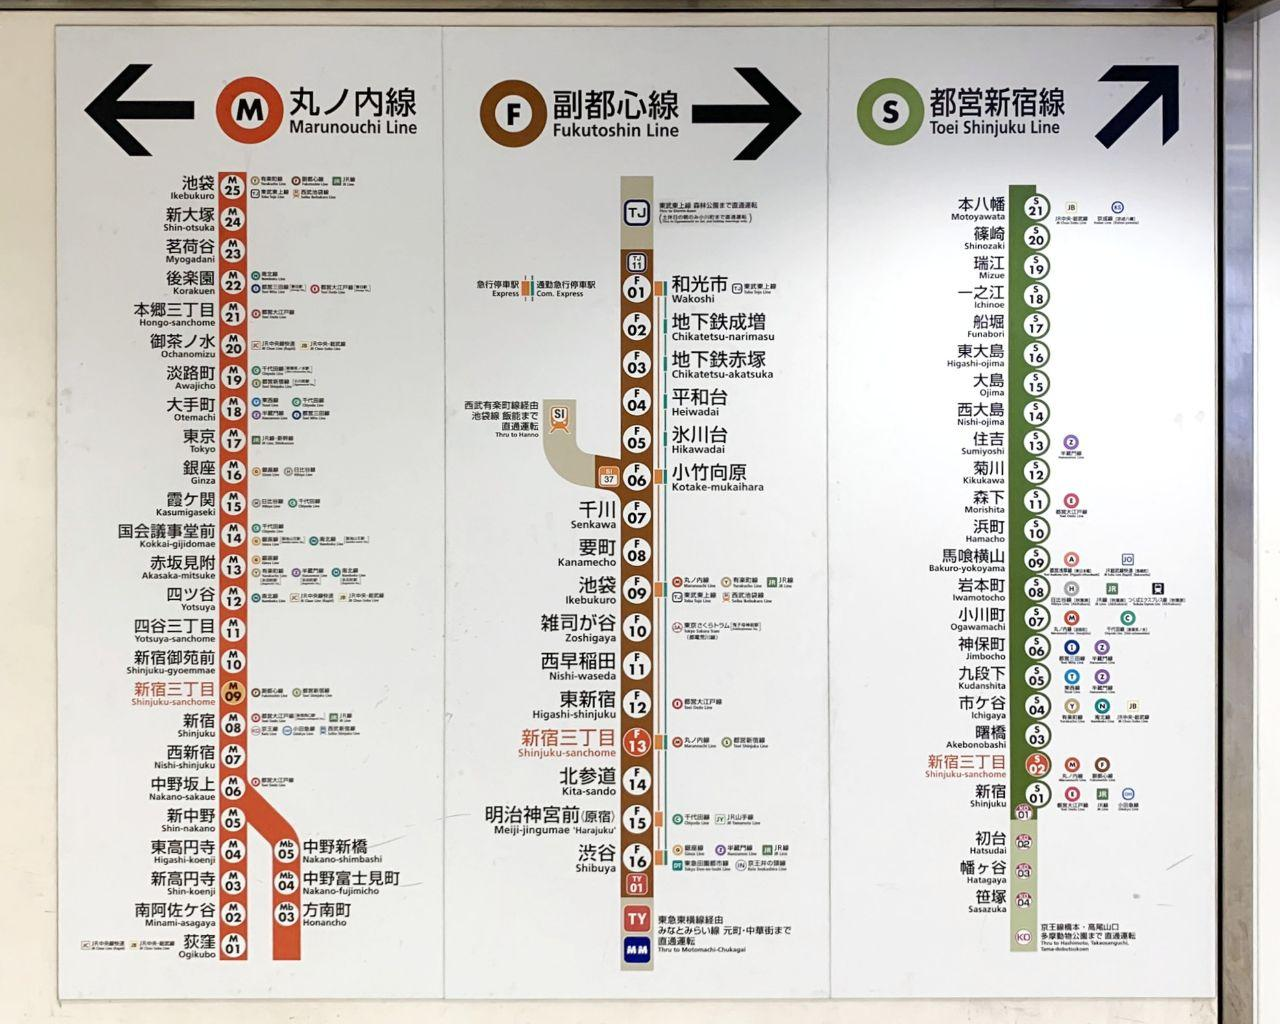 Tokyo train station guide